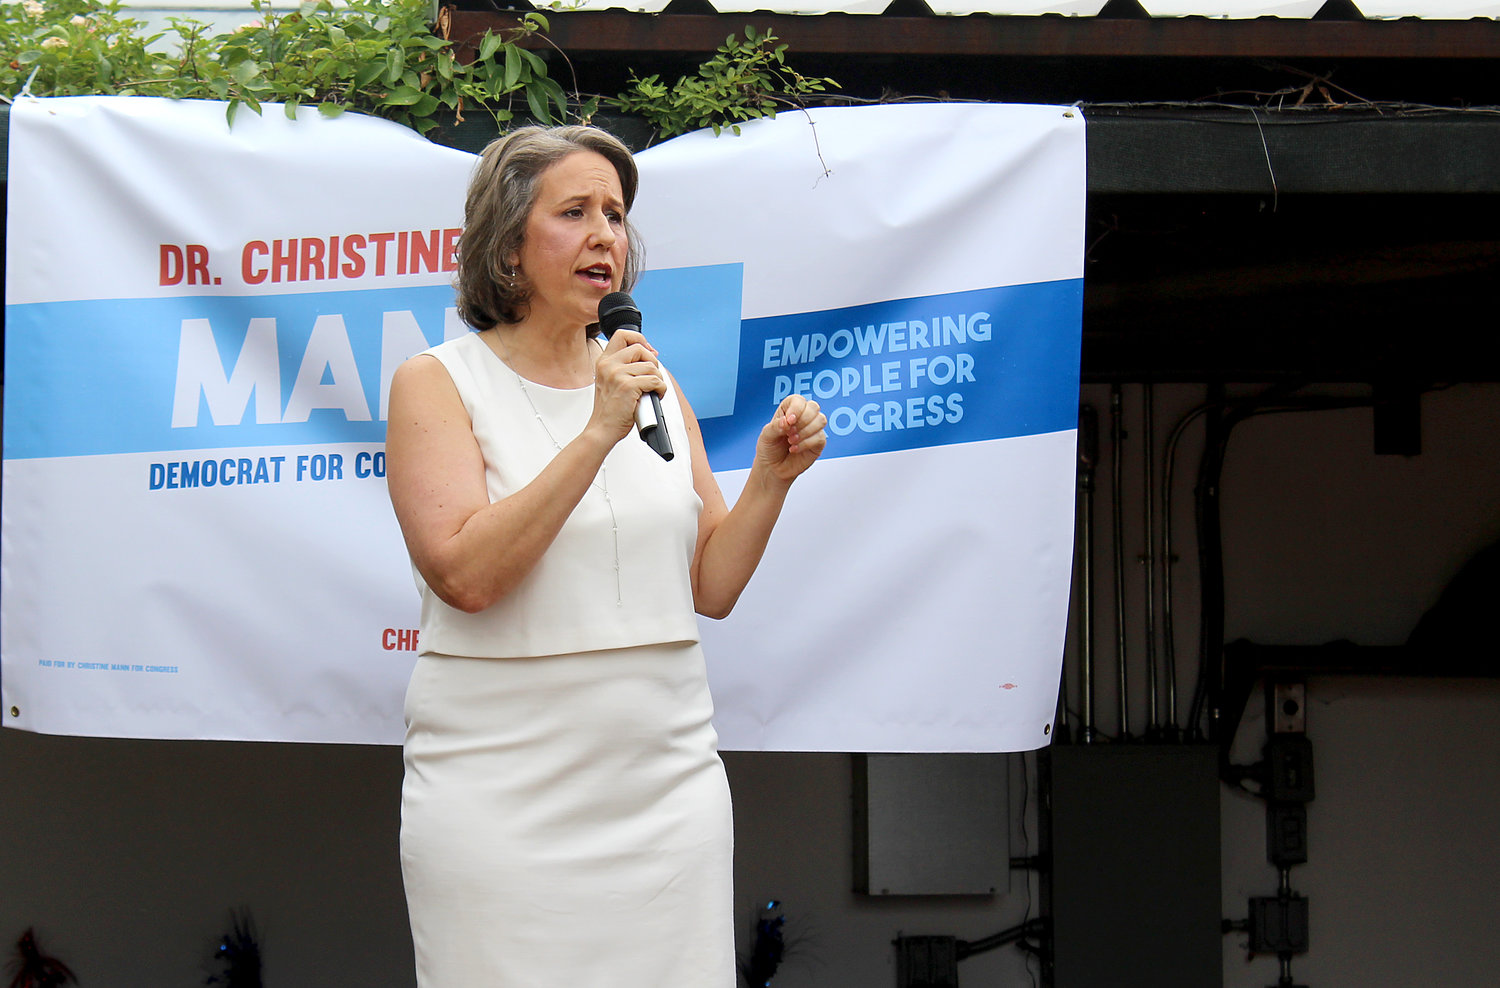 Dr. Christine Mann Saturday kicked off her campaign for the Democratic nomination to take on Republican incumbent Round Rock Congressman John Carter in the 2020 elections.